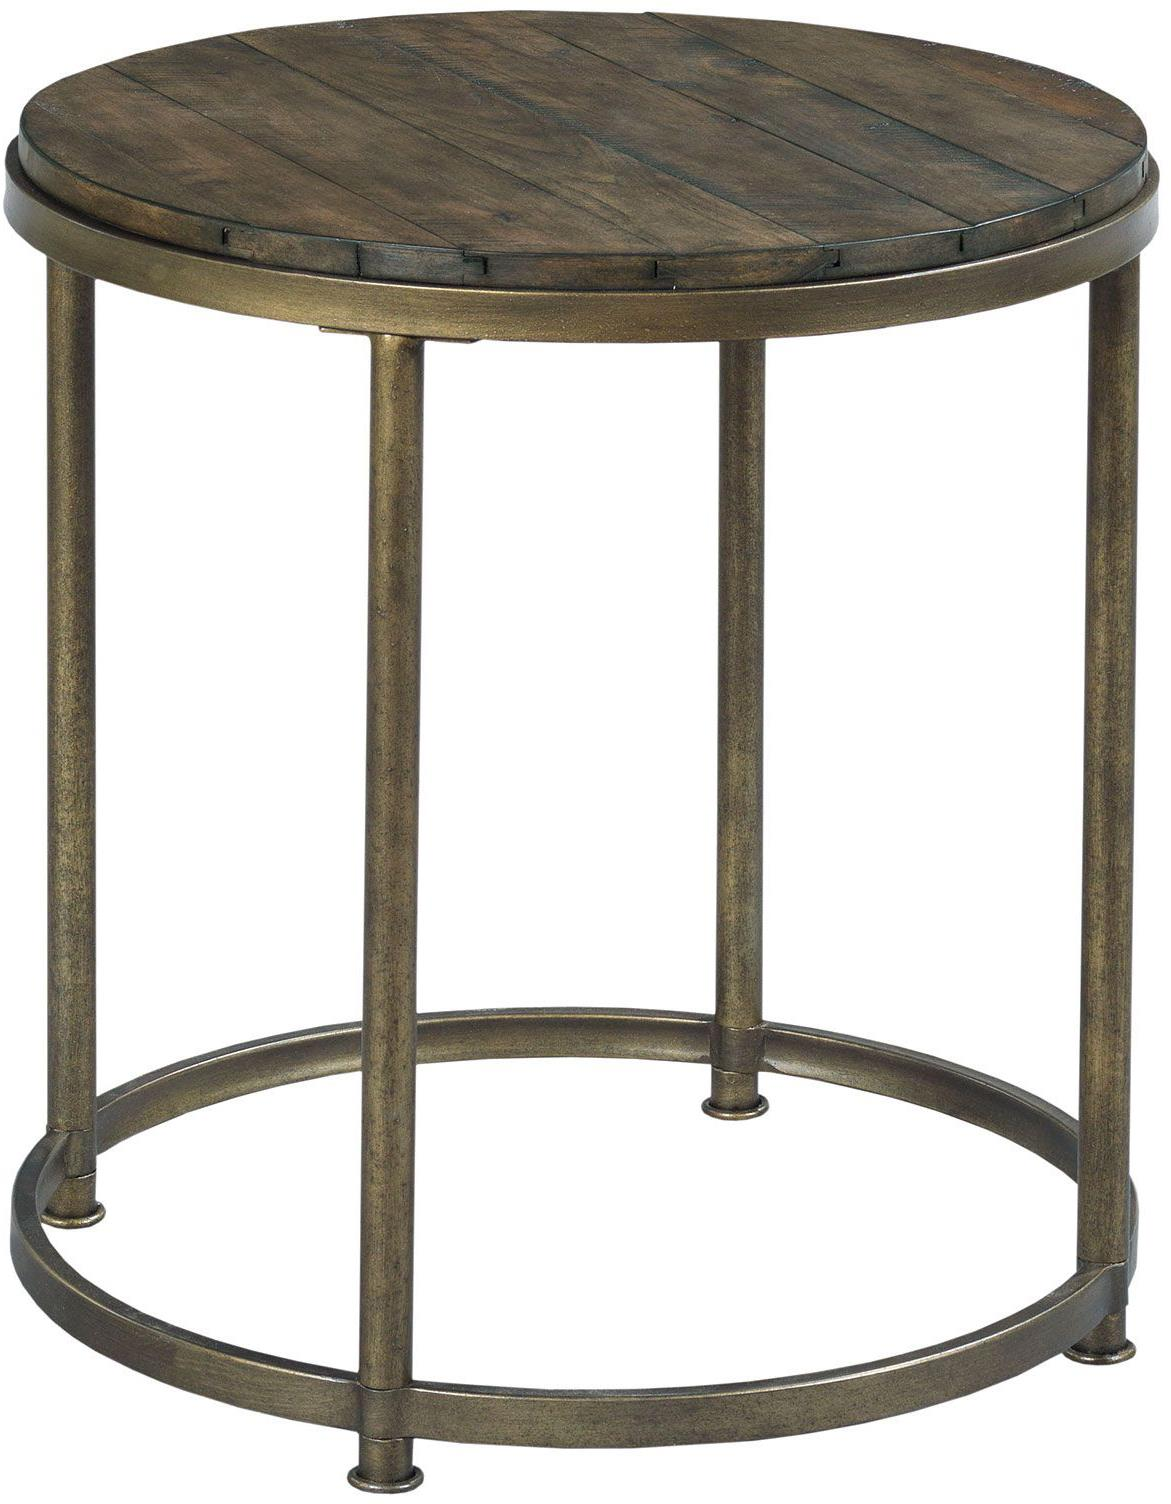 Circular End Tables Hammary Leone Round End Table With Antique Brass Base